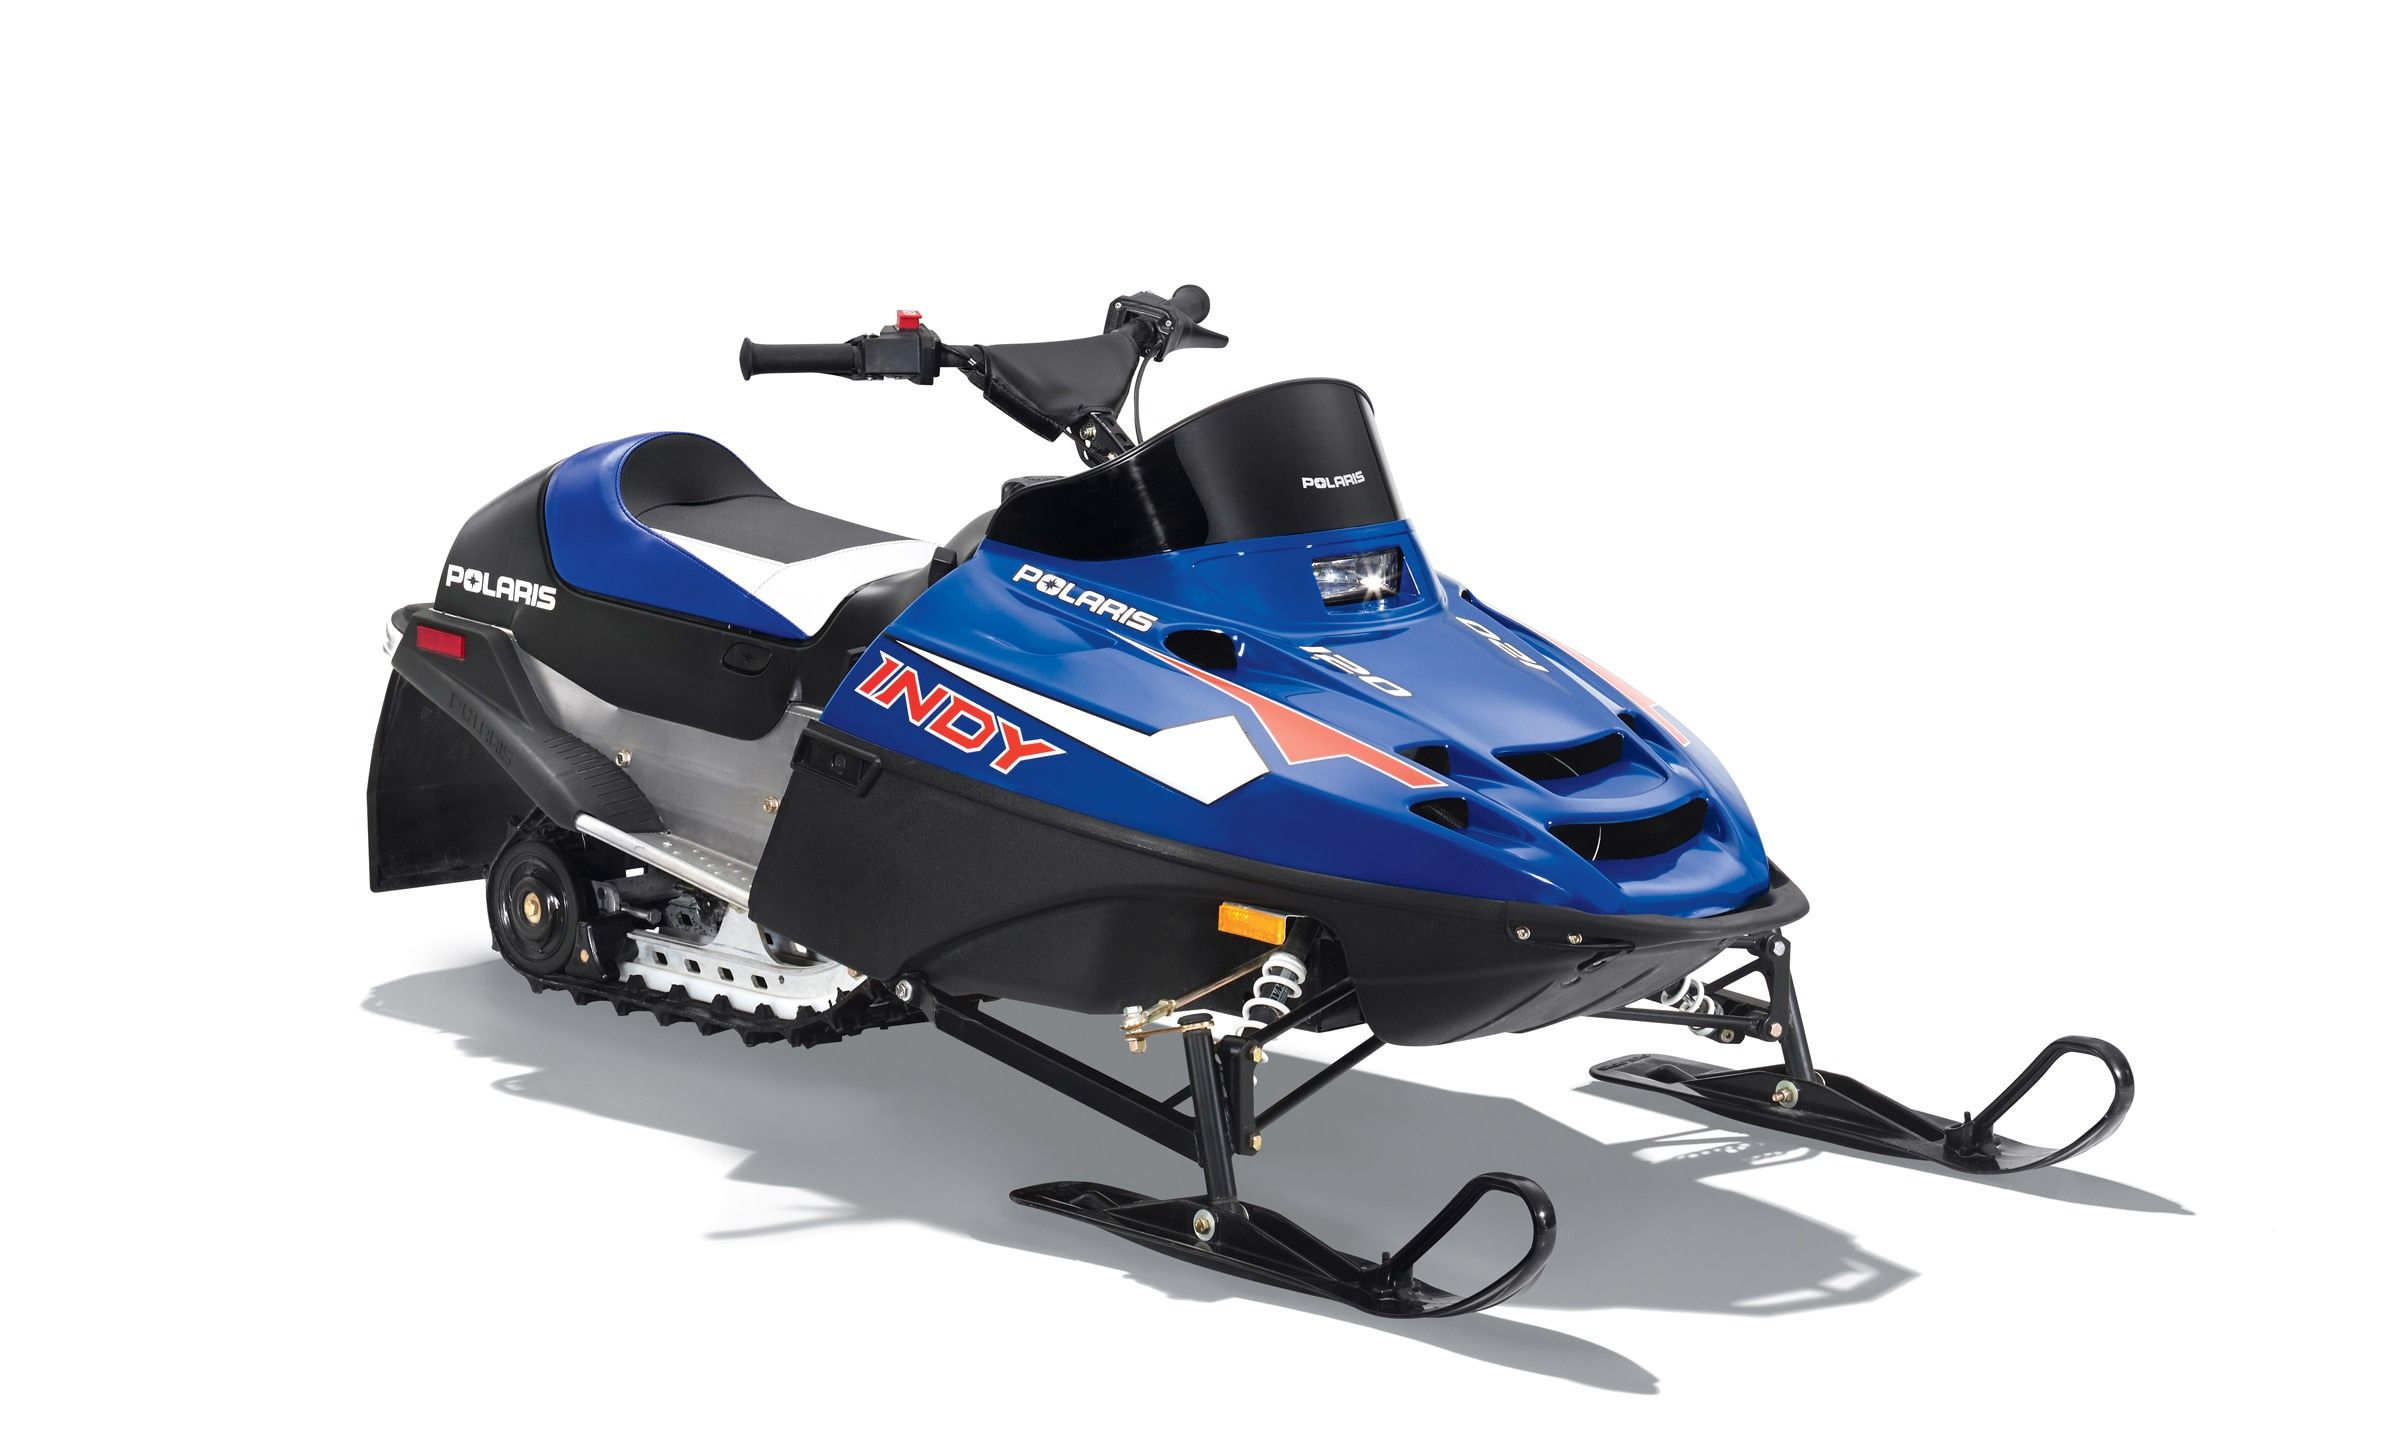 2016 Polaris 120 INDY in Bigfork, Minnesota - Photo 2